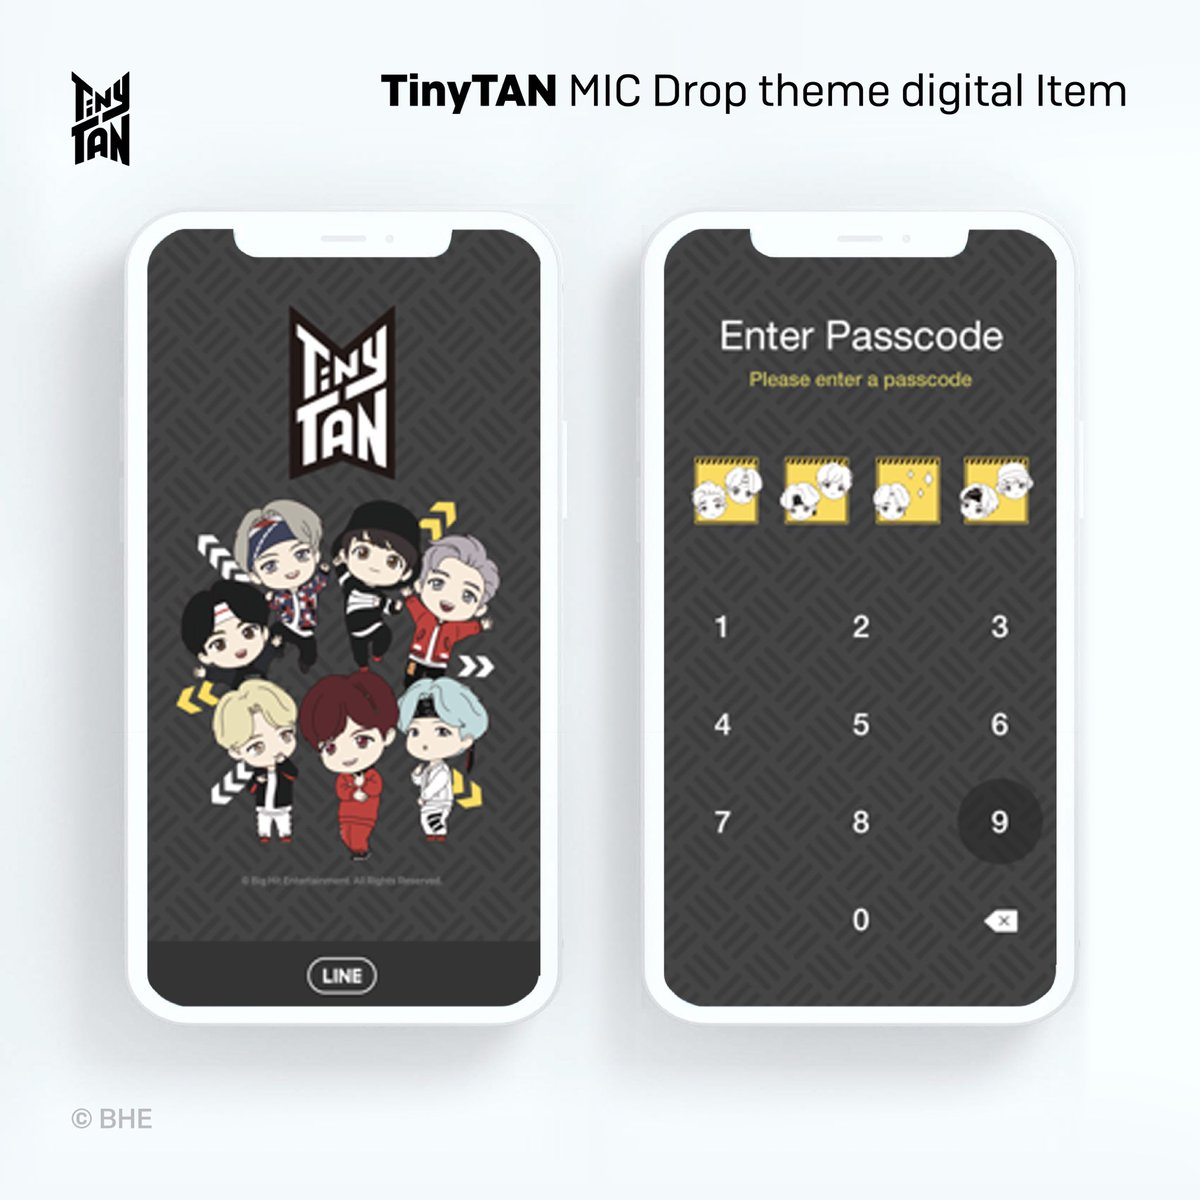 [February 2021] Newly Launched Licensed Products! TinyTAN @LINEStickerJP MIC Drop Theme available worldwide